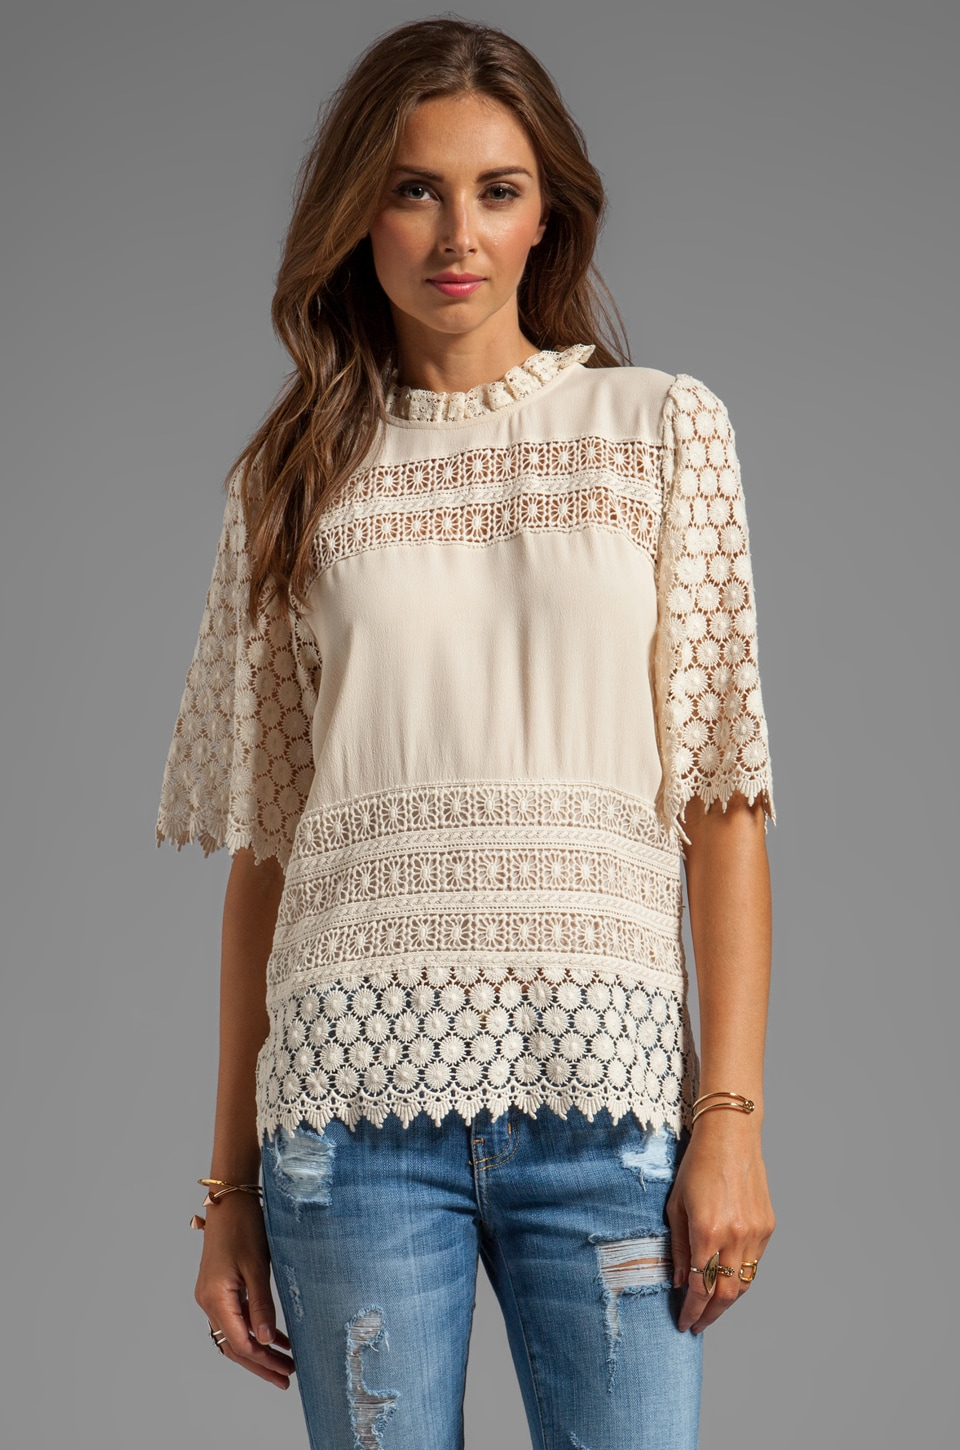 Line & Dot Prairie Lace Top in Vanilla